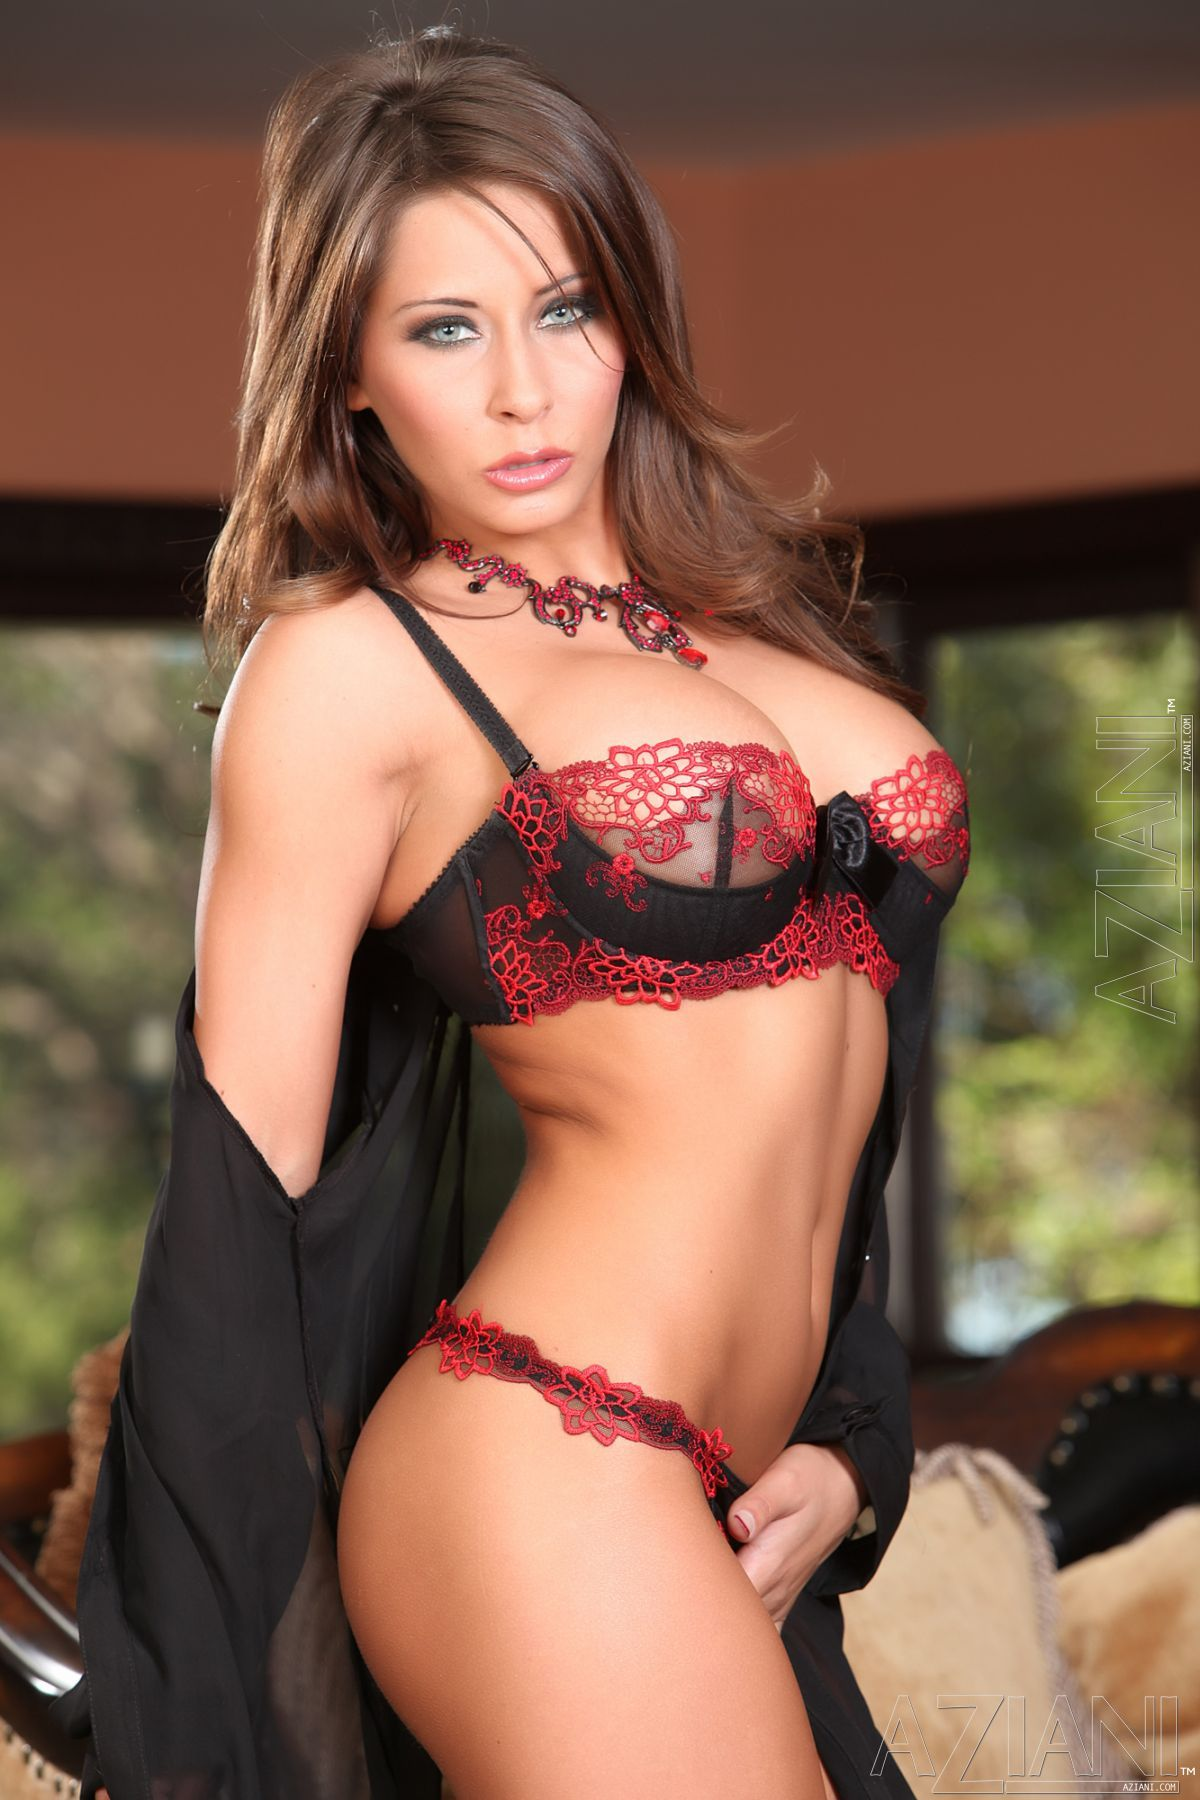 50 Revealing Photos of Madison Ivy That Are So Hot They'll ...